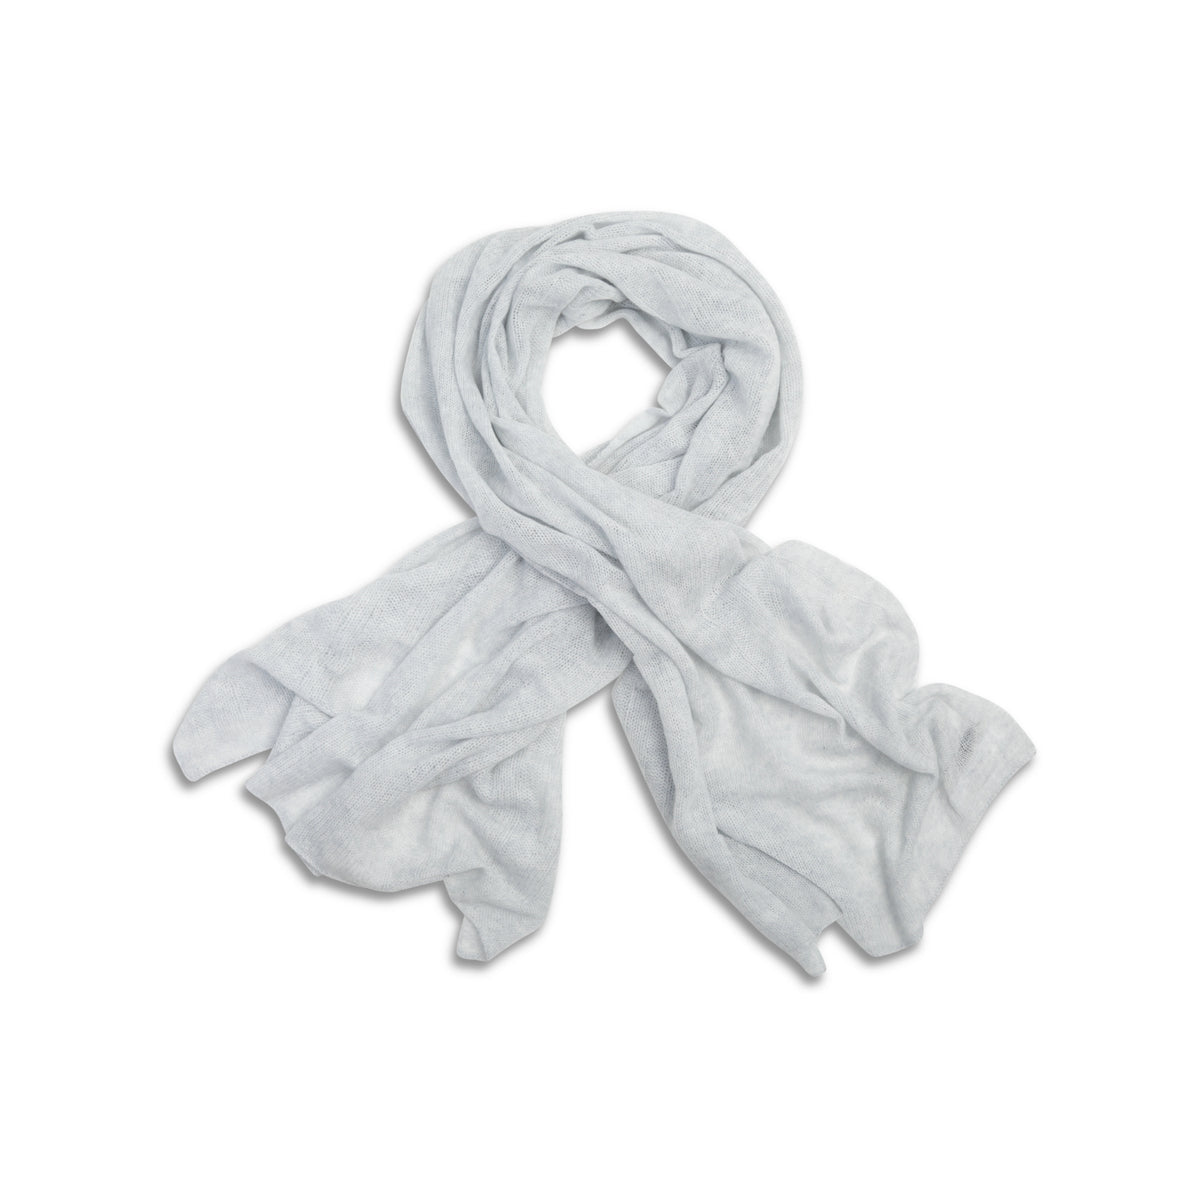 Light Grey | Knitted Cashmere Stole | Knitted Cashmere Scarf | Shop at The Cashmere Choice | London